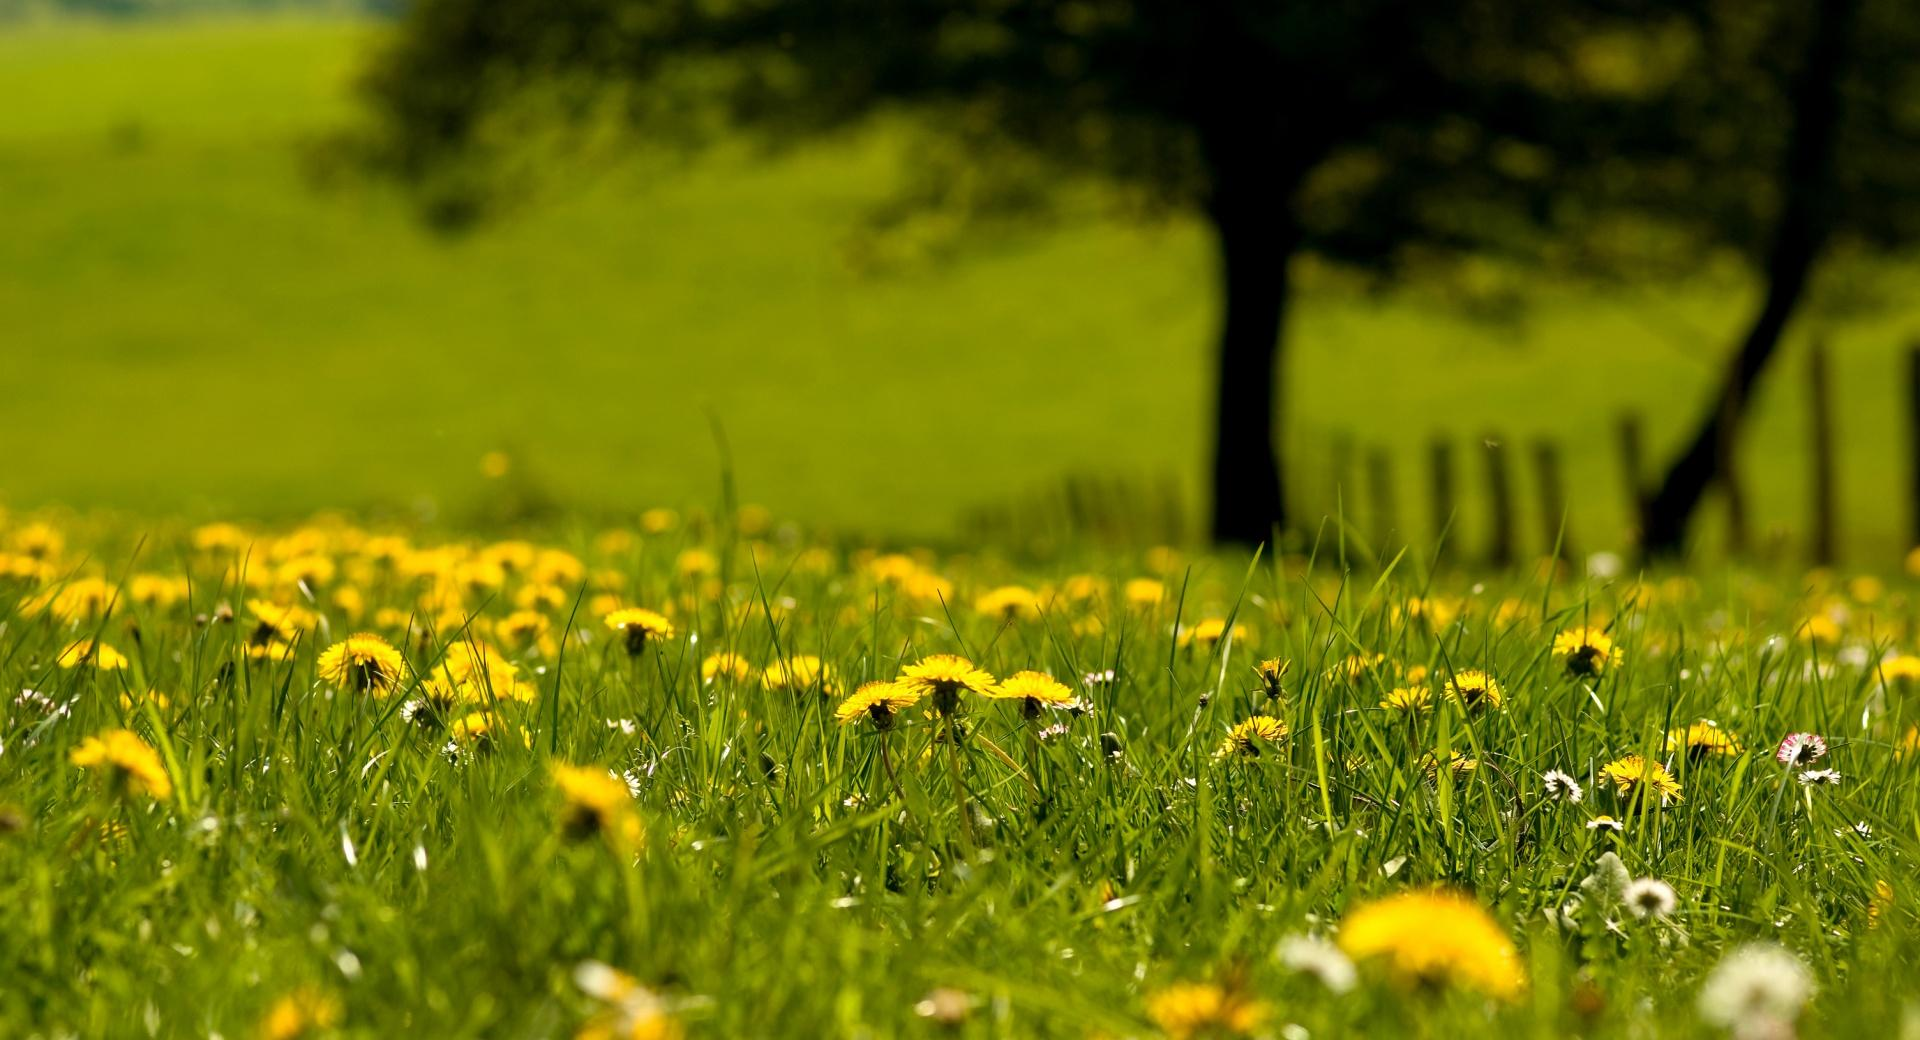 Yellow Dandelions Field wallpapers HD quality